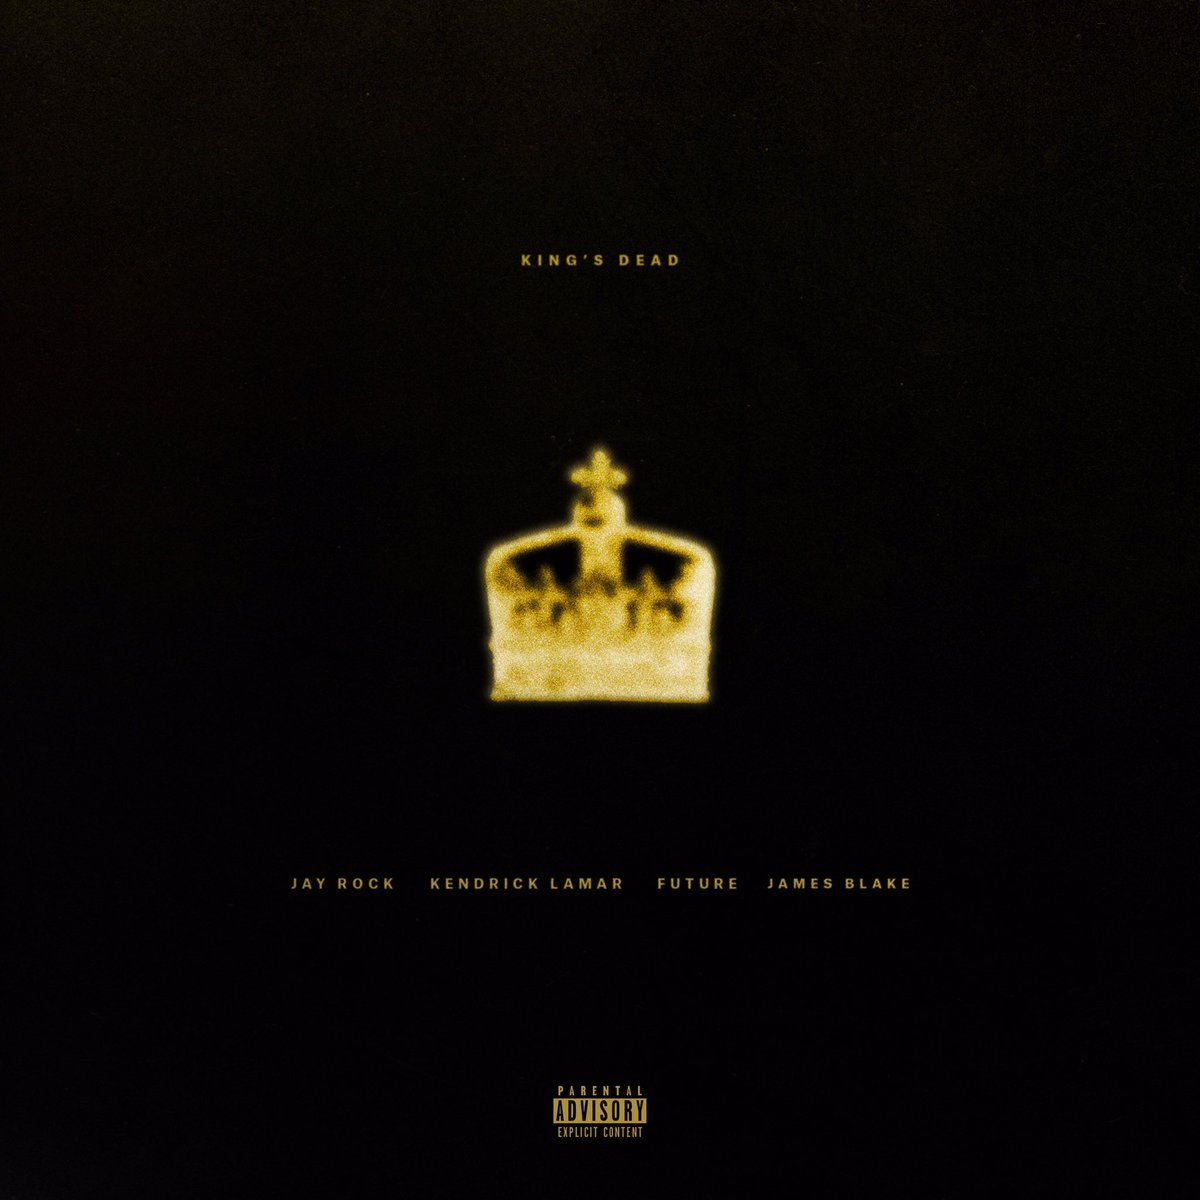 .@jayrock teams up with @kendricklamar, @1future, and @jamesblake on new song 'King's Dead' https://t.co/w6Toz1OAne https://t.co/fkbsUjNE8q